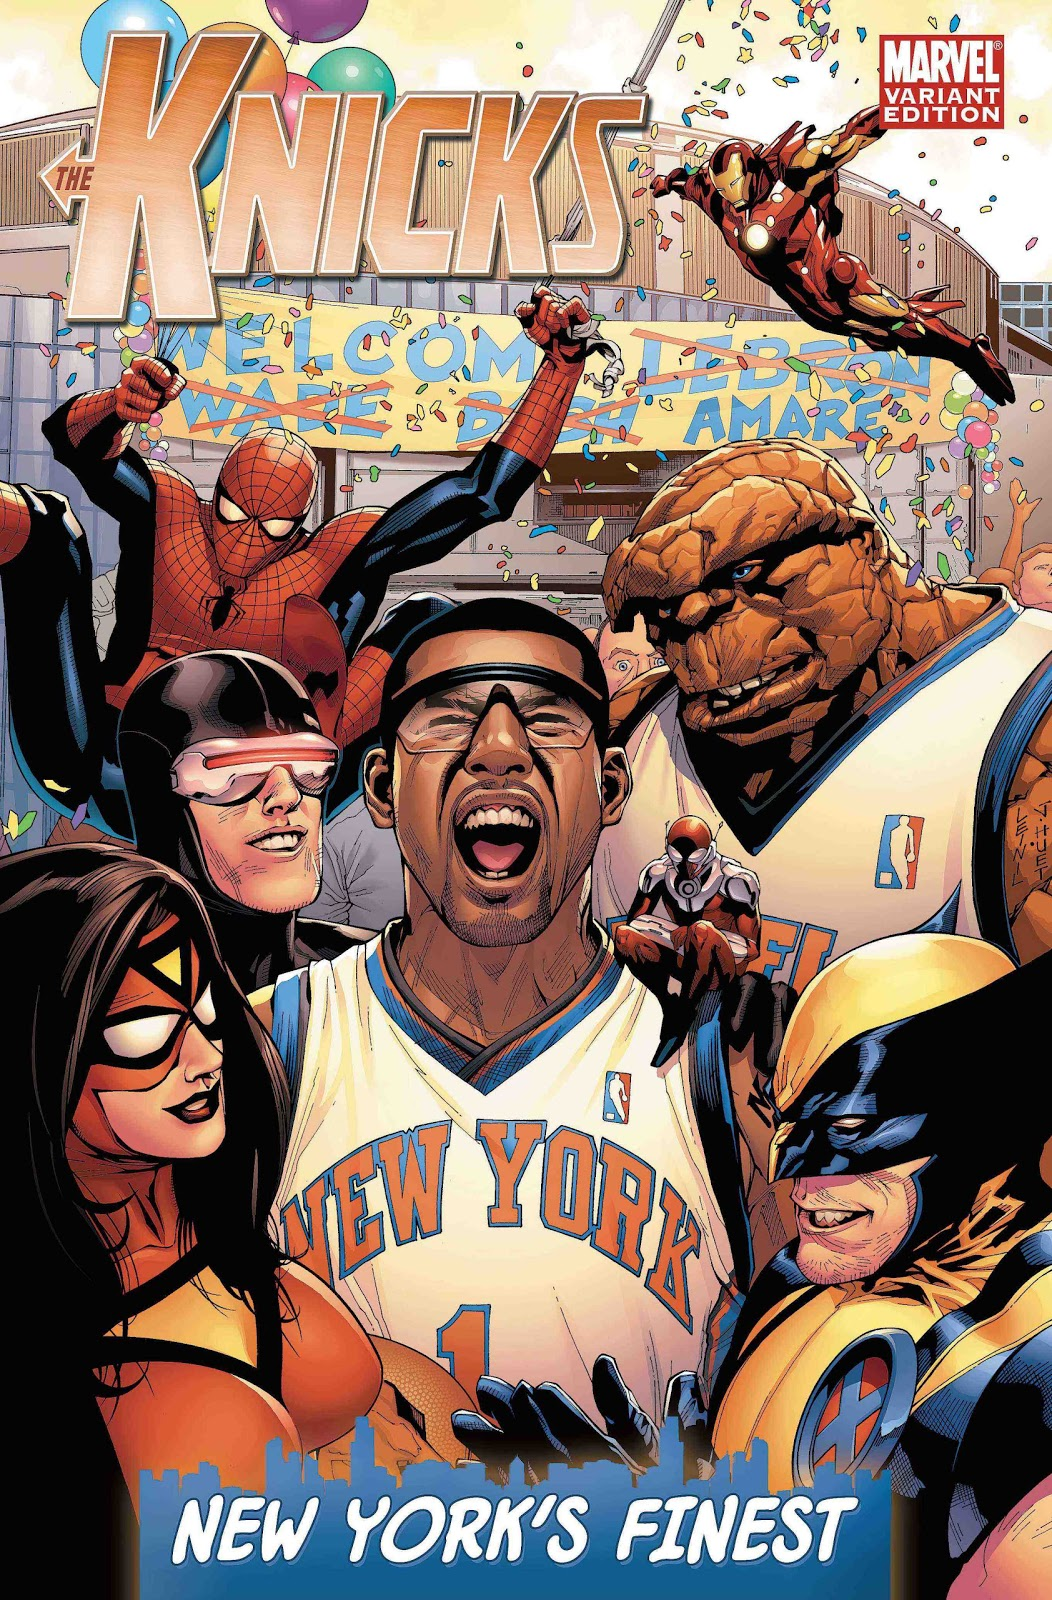 http://3.bp.blogspot.com/_Ot2E-EUZnnY/TMa7M5AFvxI/AAAAAAAAGzY/YTY9NQQi__4/s1600/New-york-knicks-amare-stoudemire-with-marvel-heroes.jpg